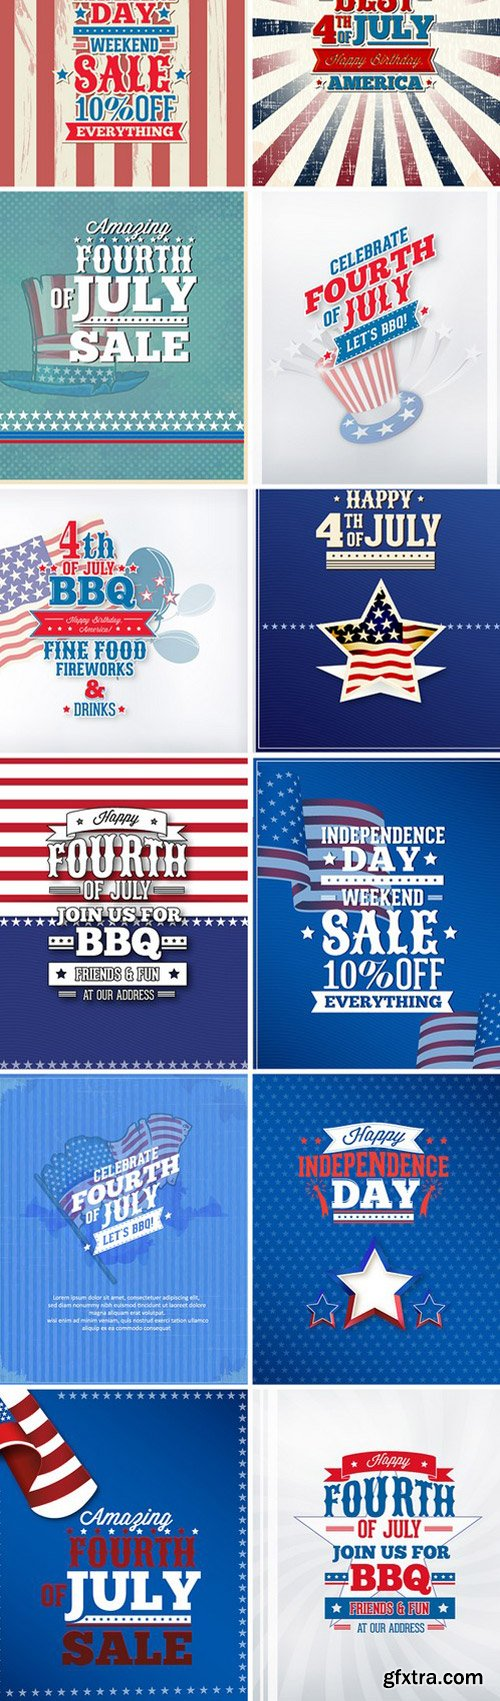 Independence Day Vector Illustrations